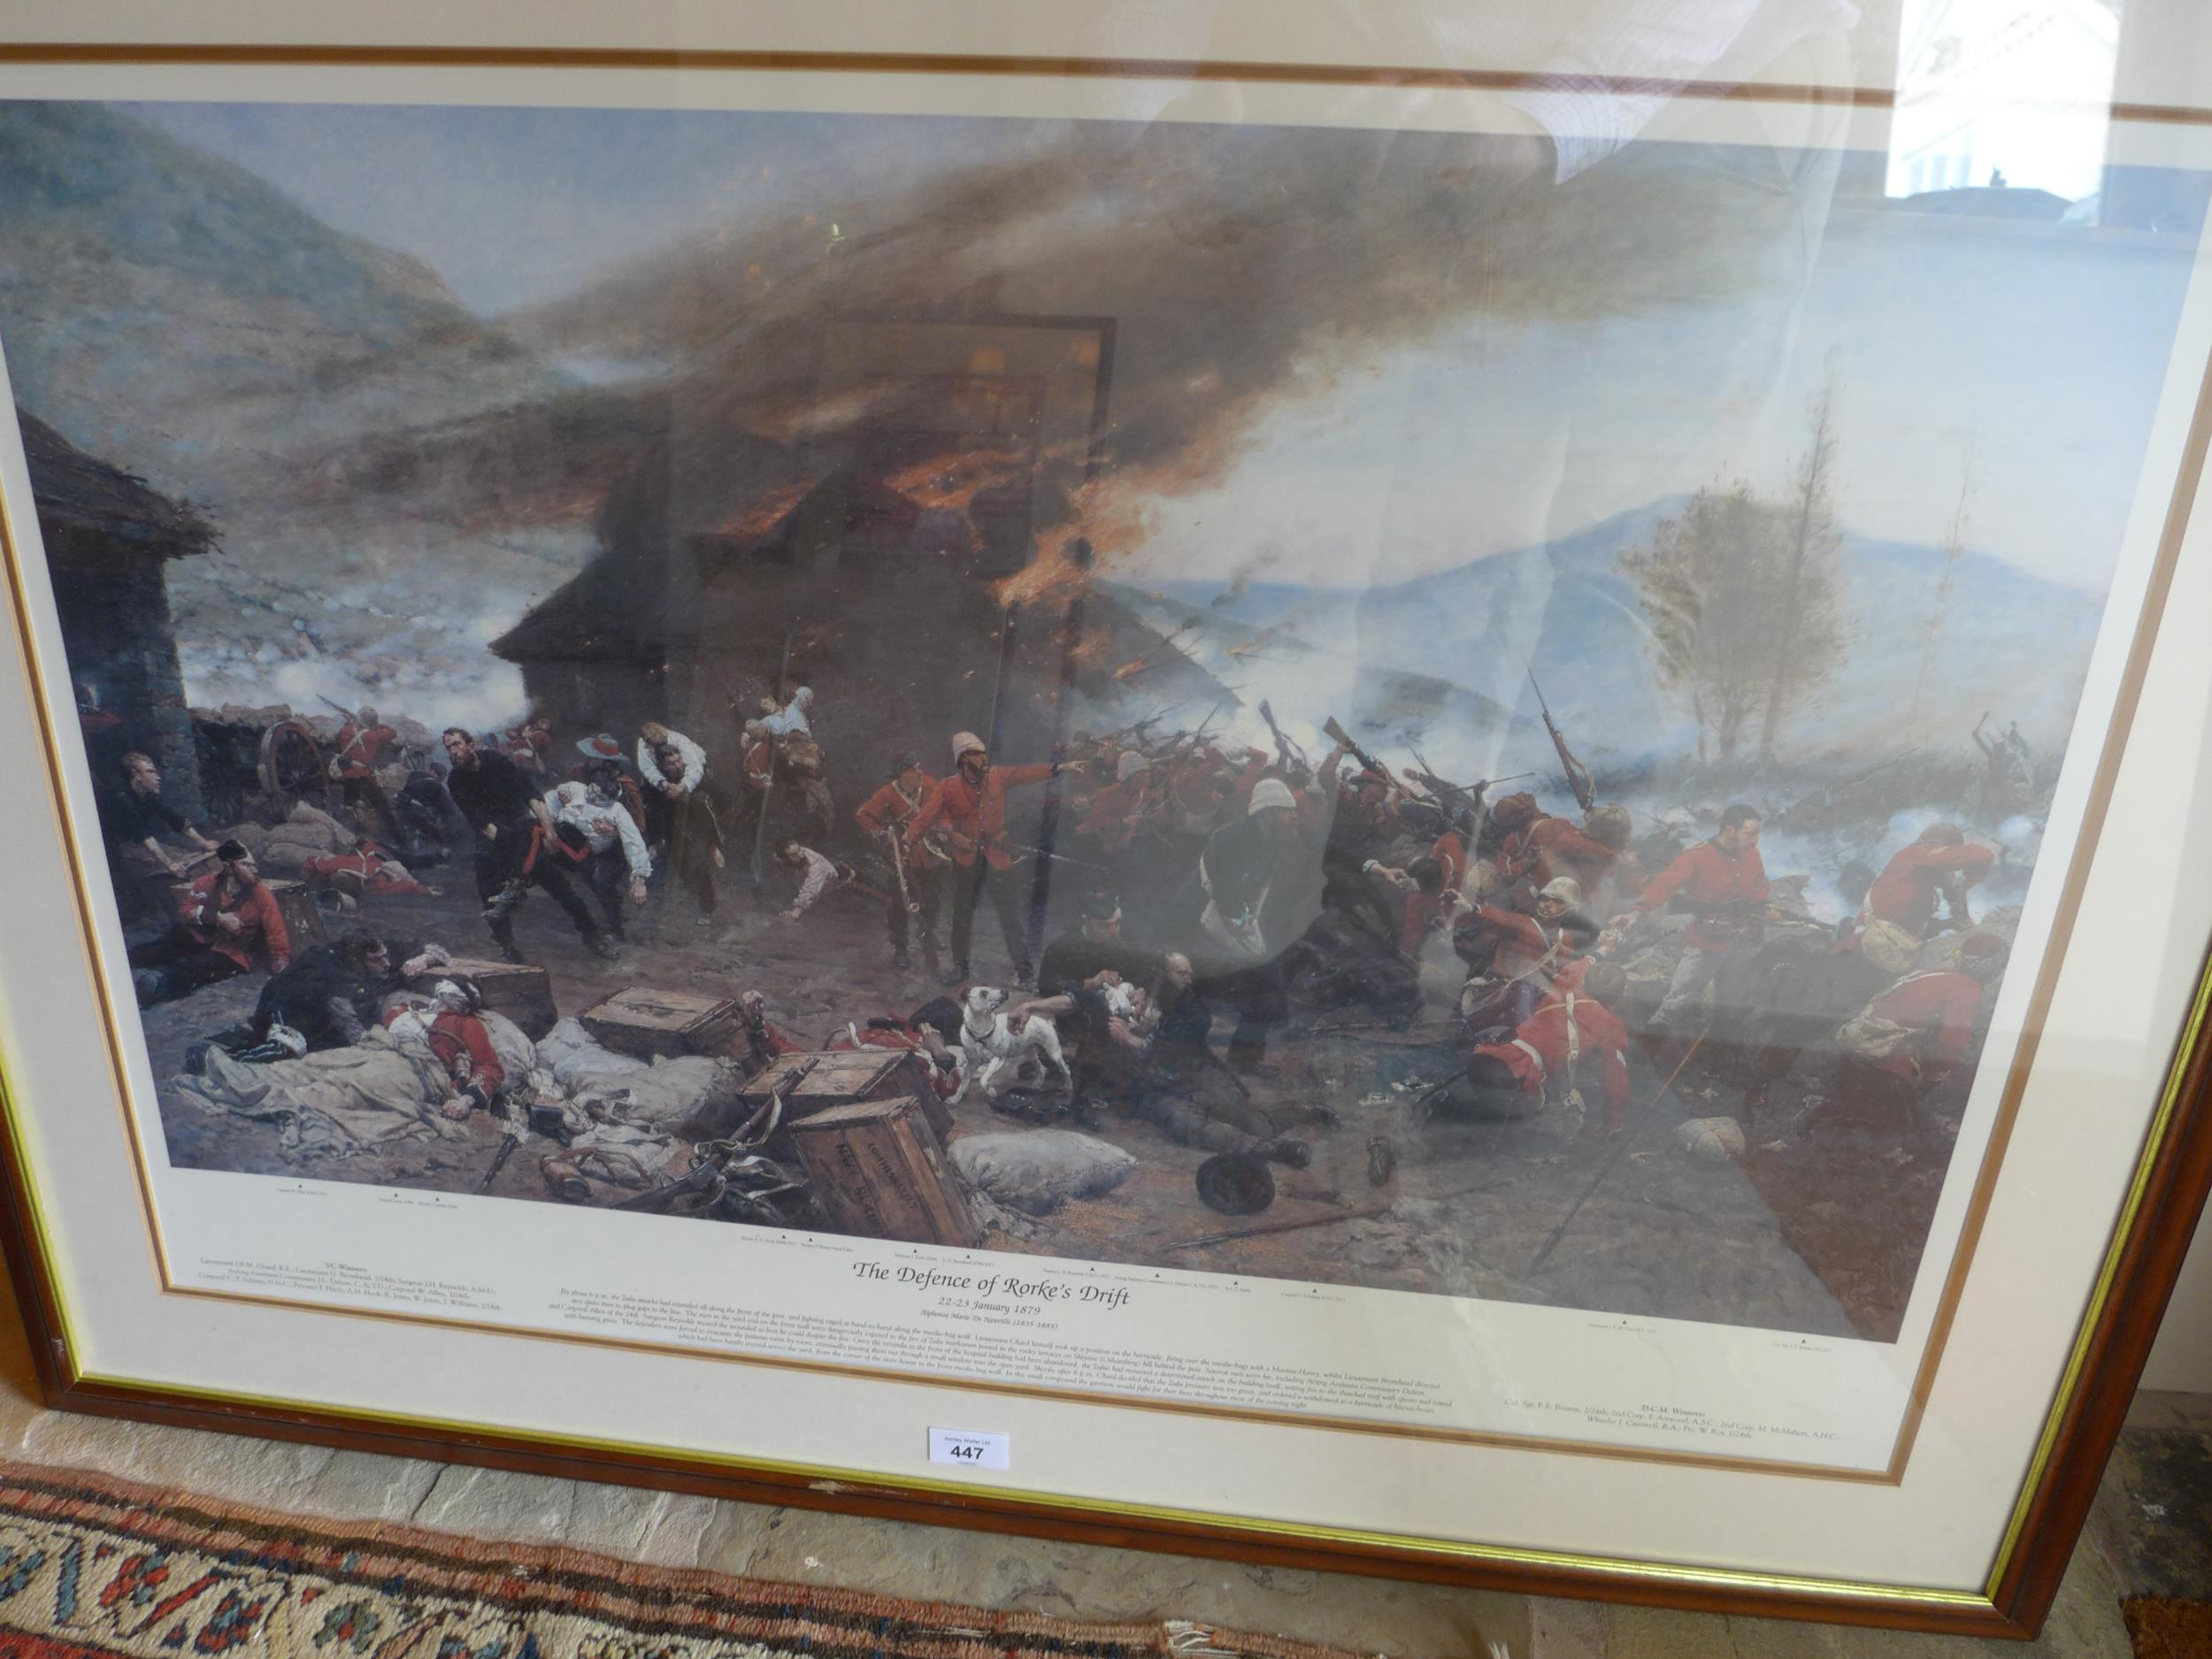 A LARGED FRAMED AND GLAZED COLOUR PRINT OF THE DEFENCE OF RORKE'S DRIFT, 22-23RD JANUARY 1879 WITH